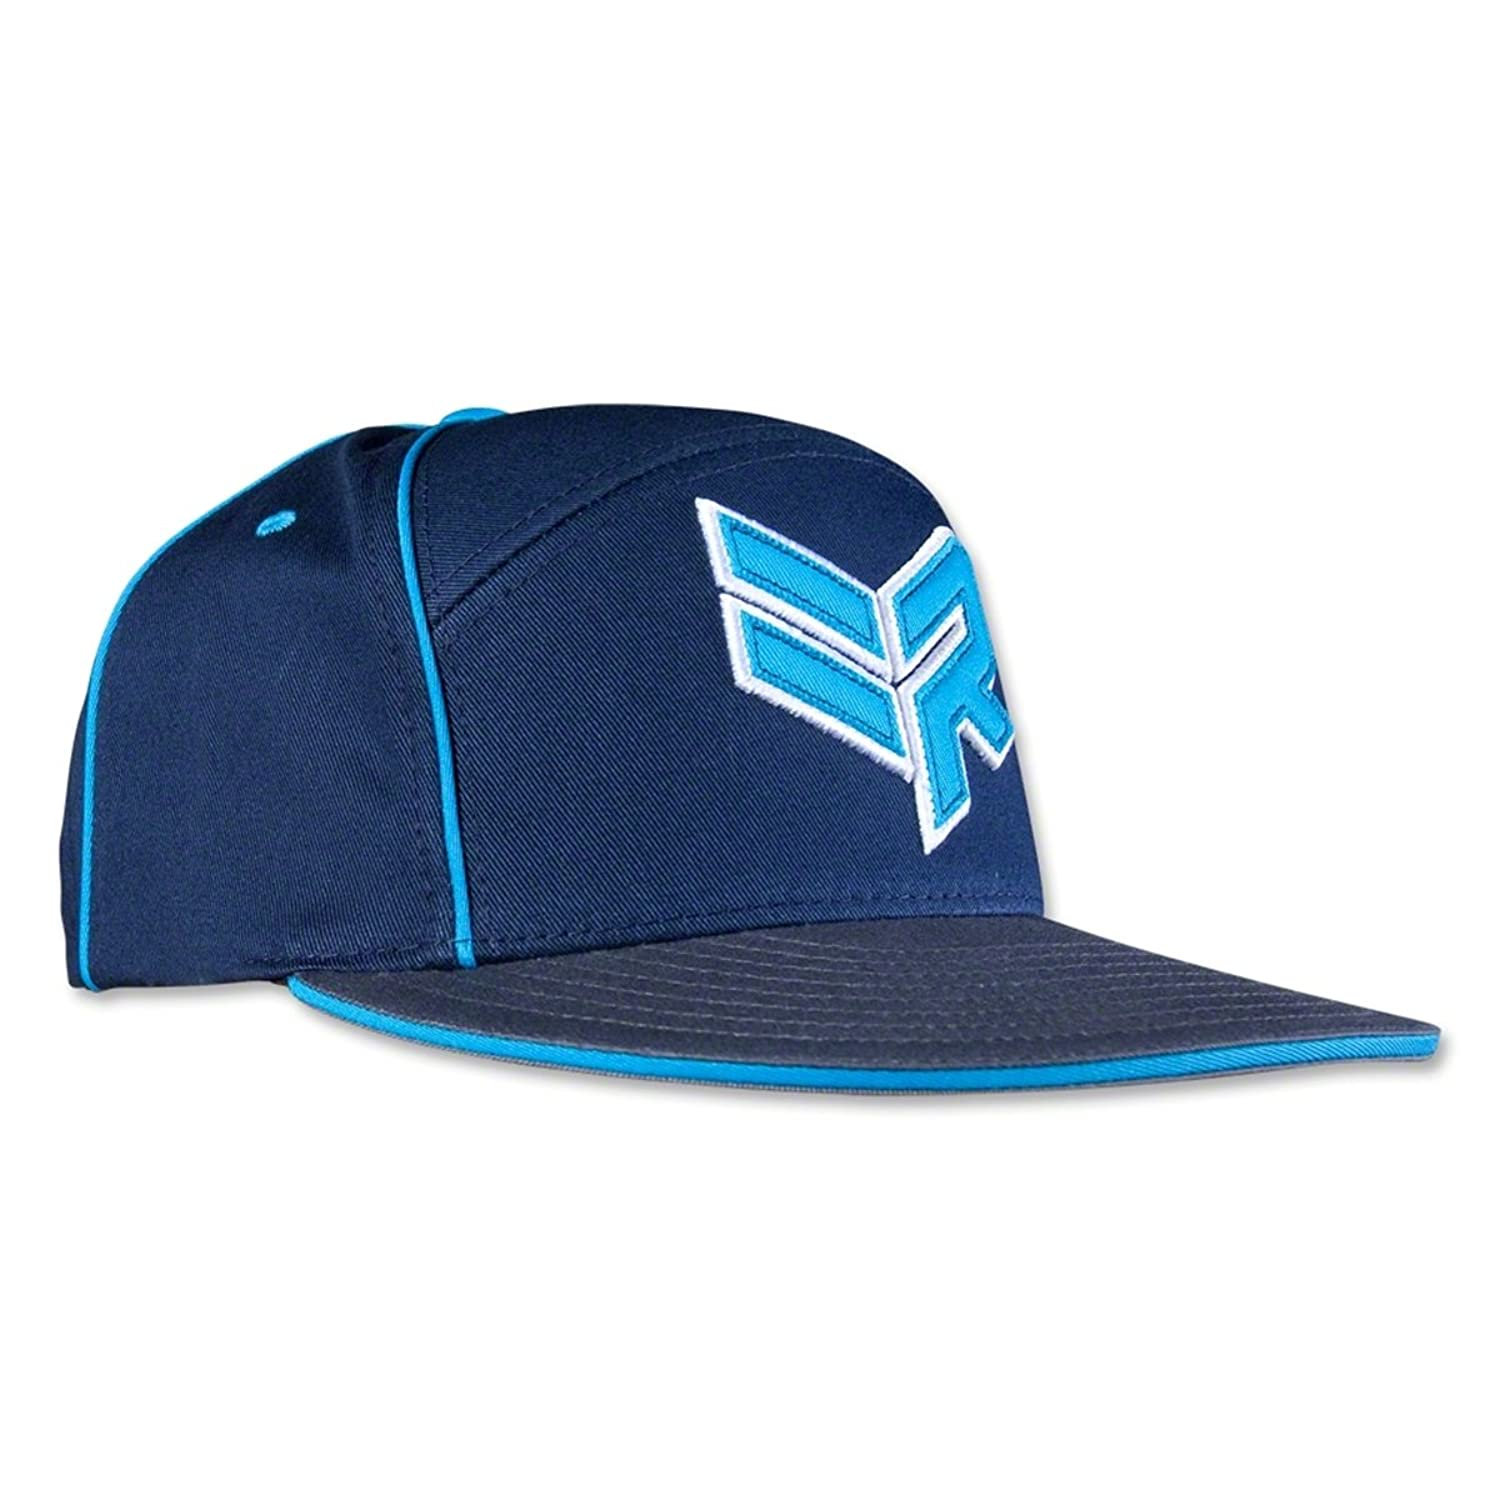 Warrior lacrosse rabil snapback hat aviat at amazon mens clothing store  baseball caps jpg 1500x1500 Warrior 215cdc2f598a